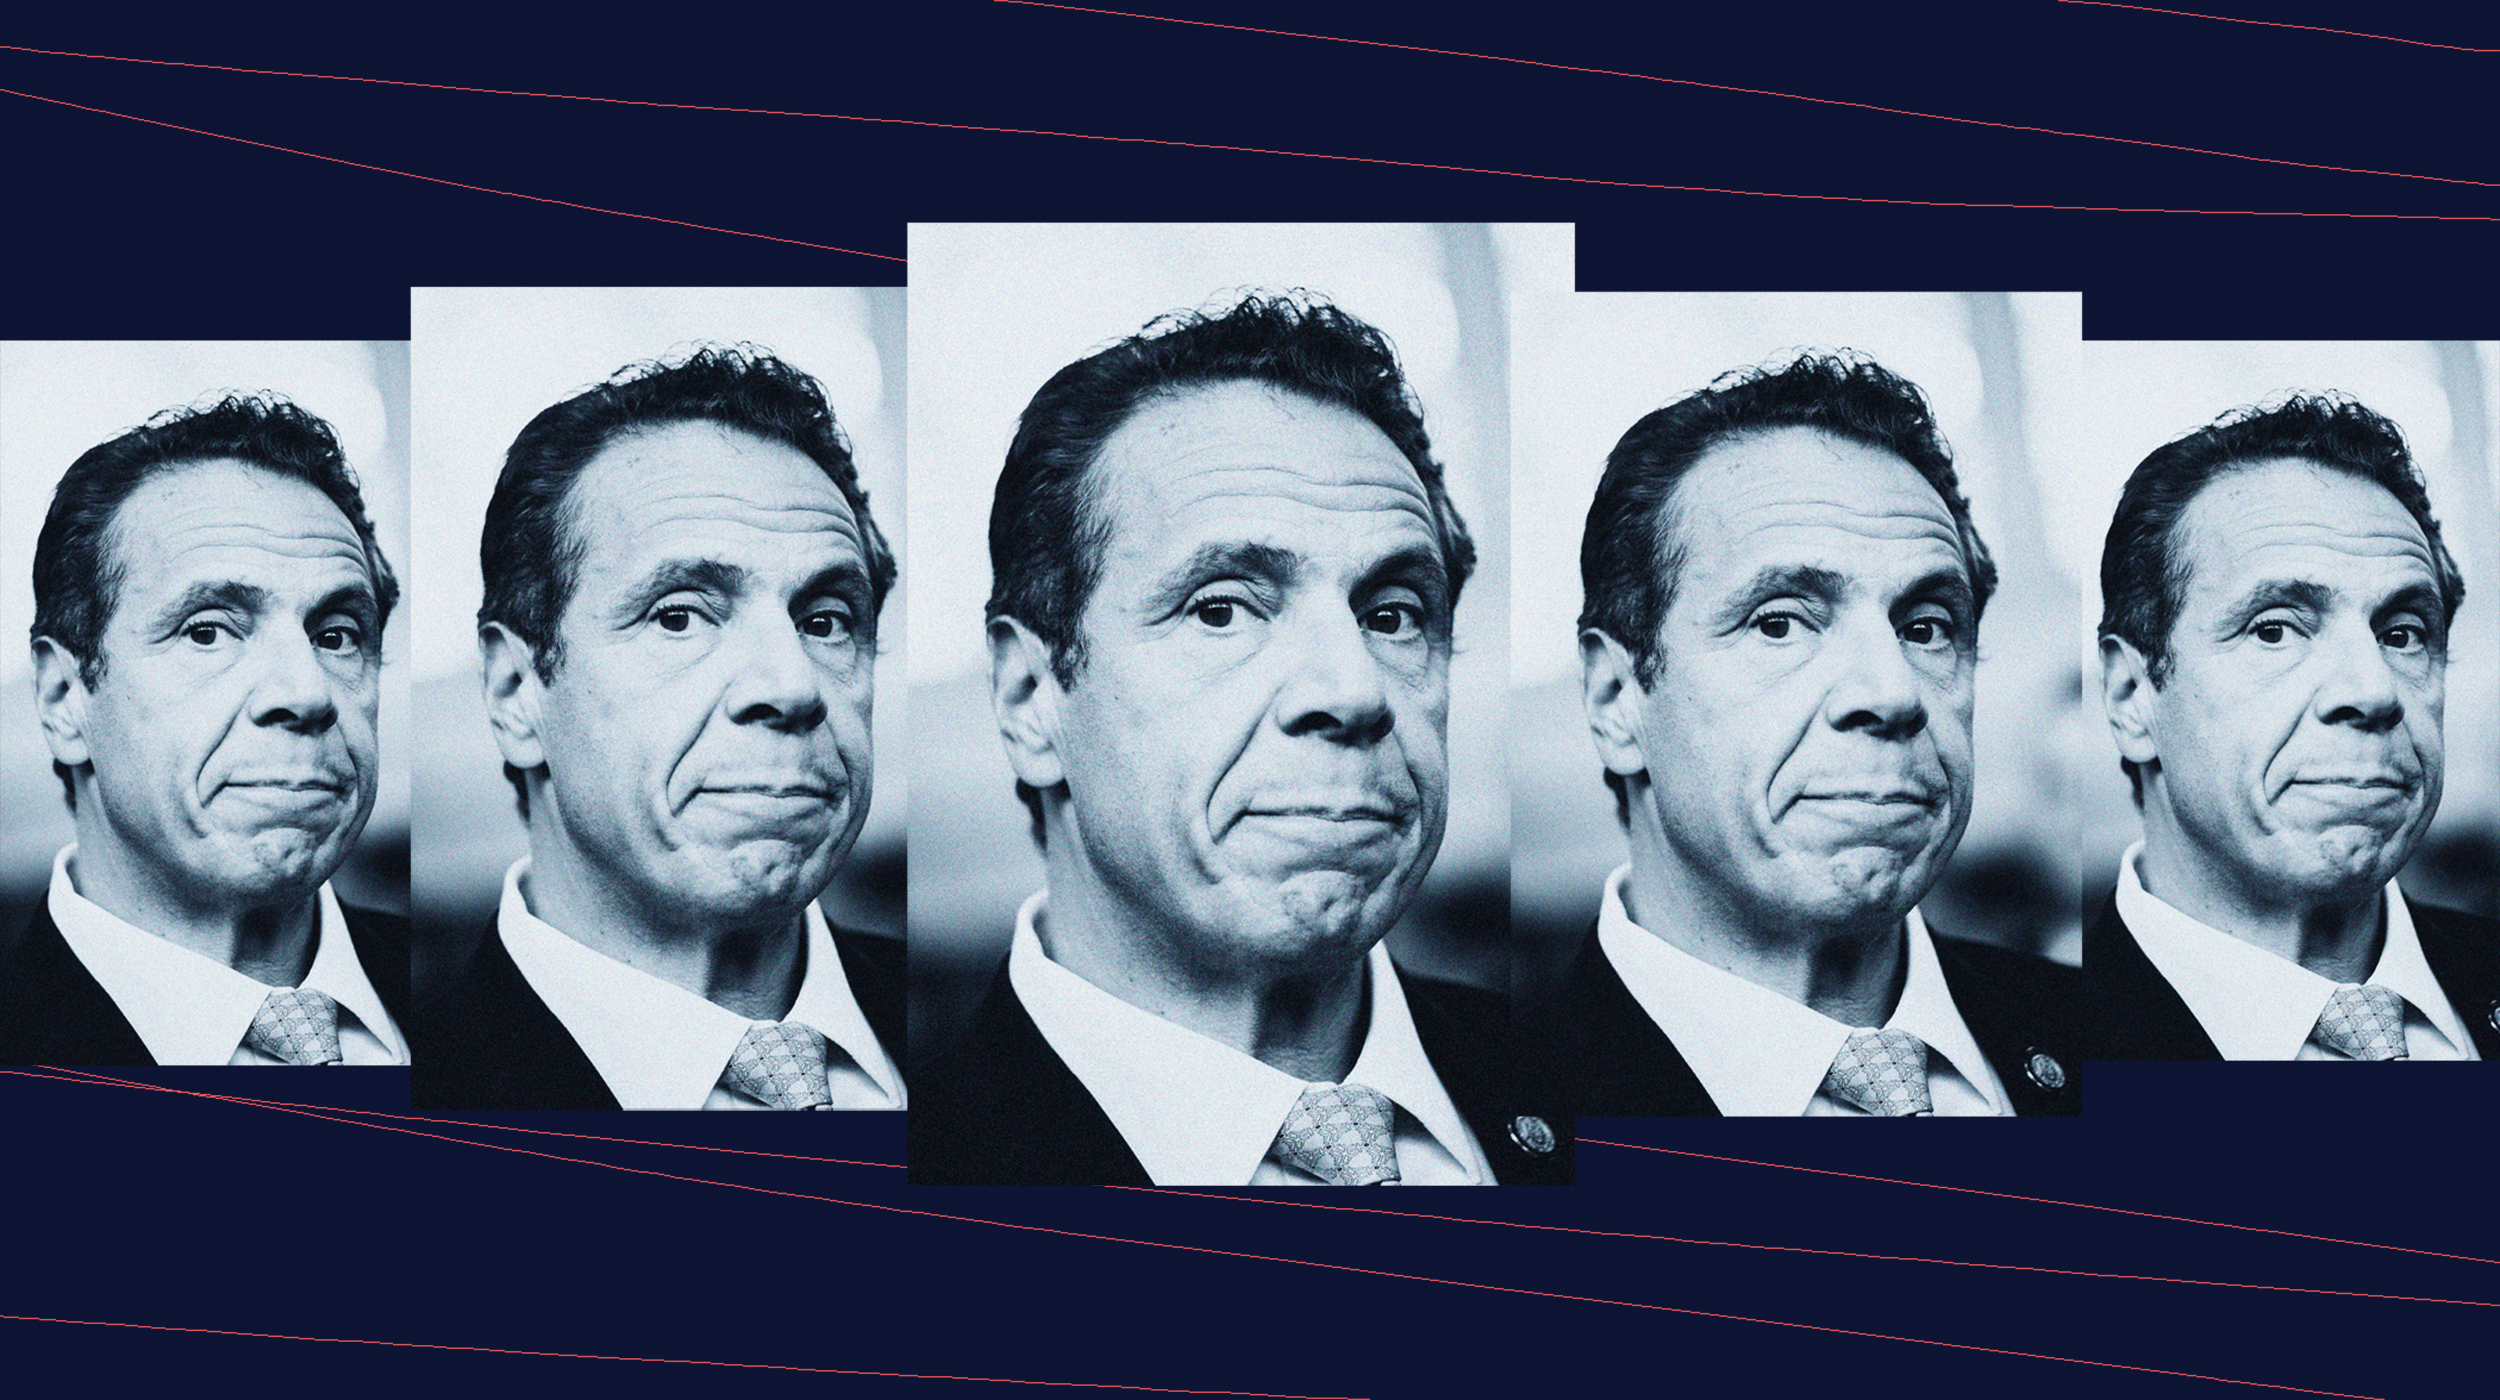 Cuomo is accused of breaking laws, but will he be charged?